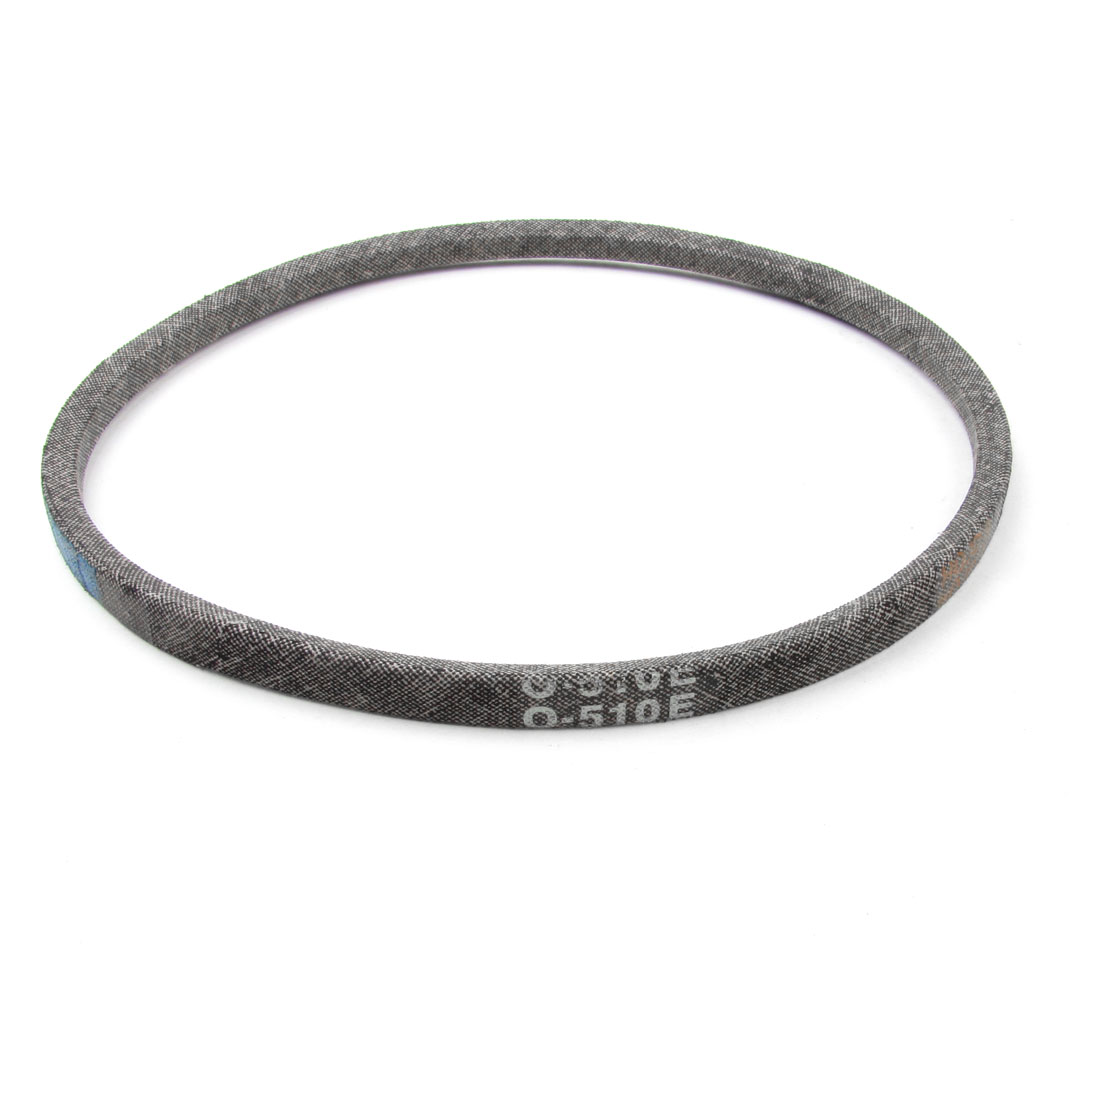 "9mm Outer Width 51cm 20"" Inner Girth Washing Machine Motor V Belt O-510E"